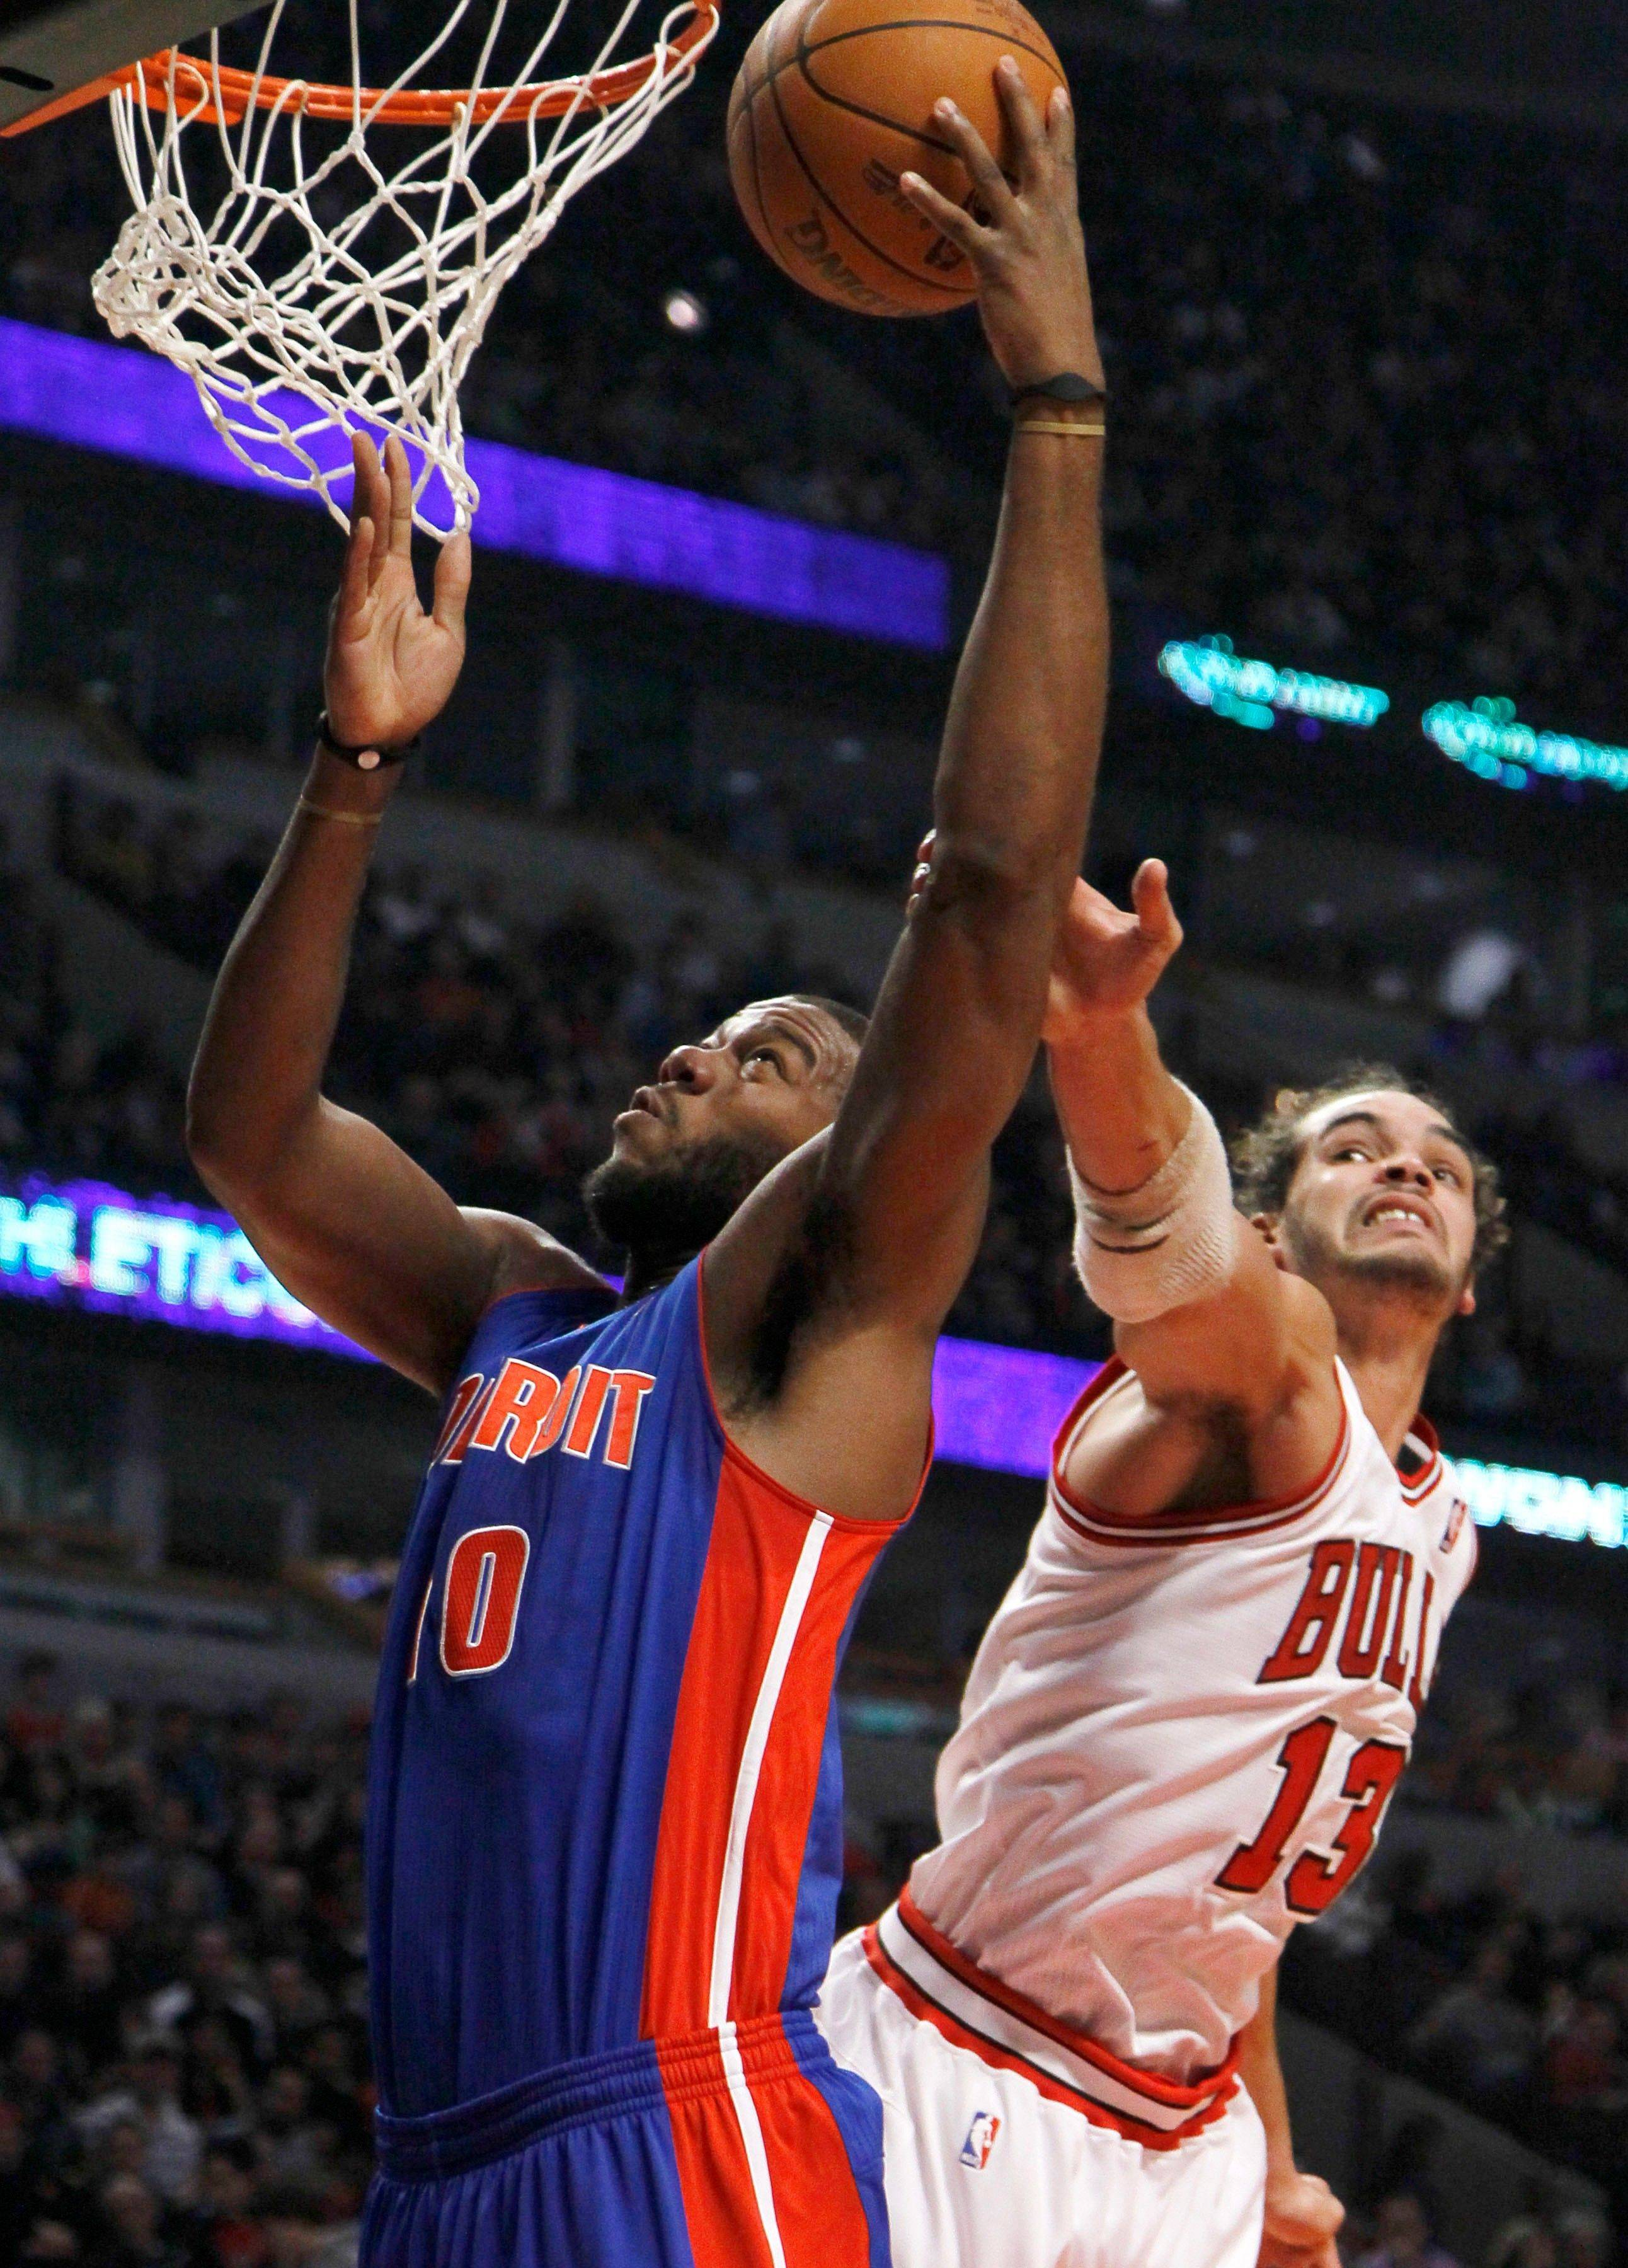 The Bulls' Joakim Noah commits a foul Monday night trying to guard Greg Monroe of the Pistons. The Bulls won 92-68 at the United Center.